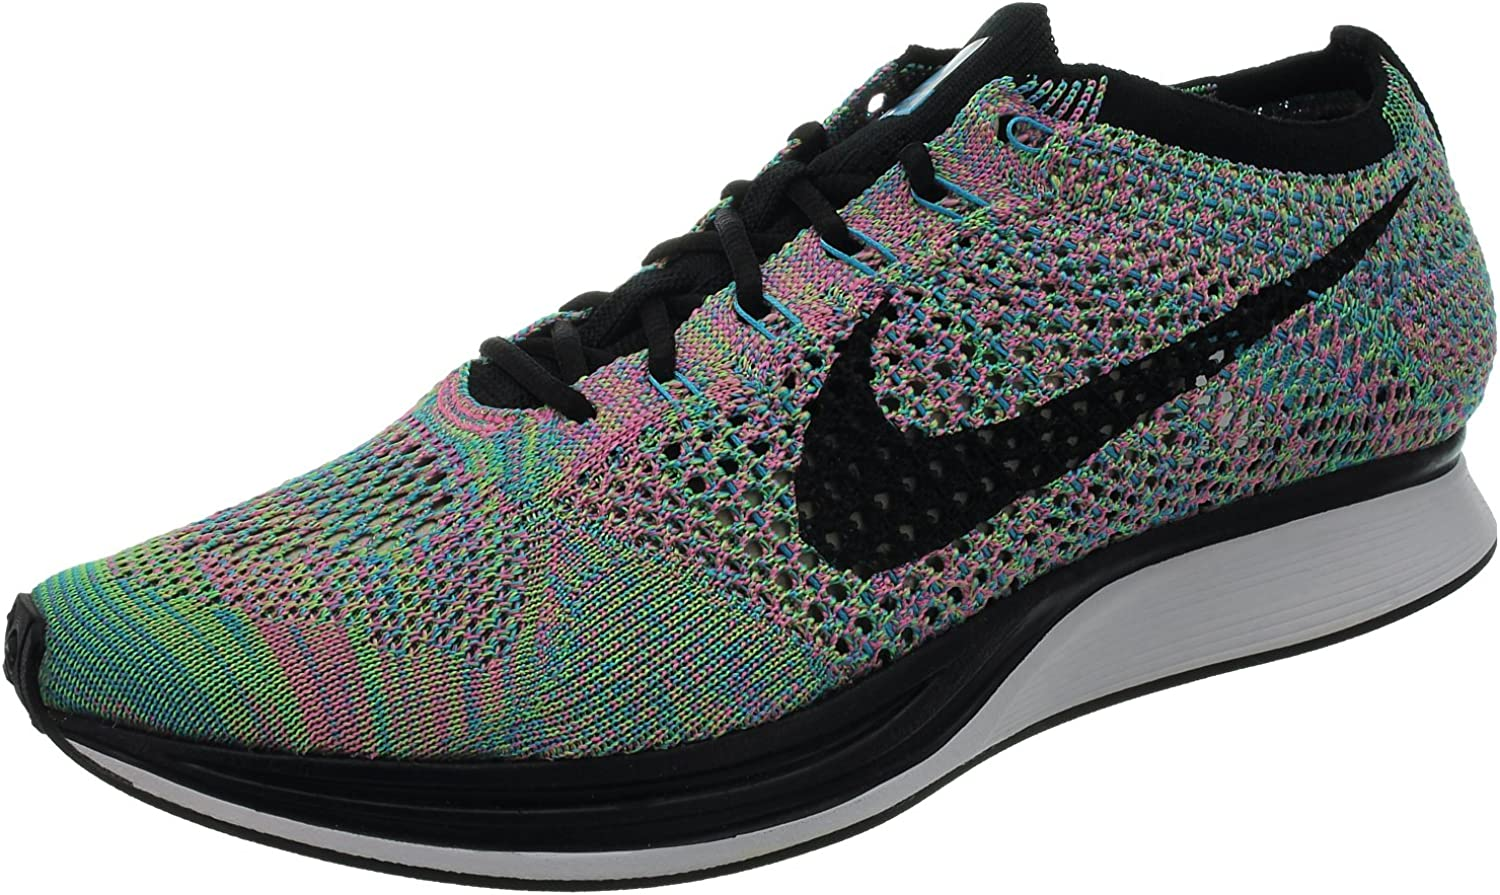 Nike Mens Flyknit Racer Blue Glow Black-White Fabric